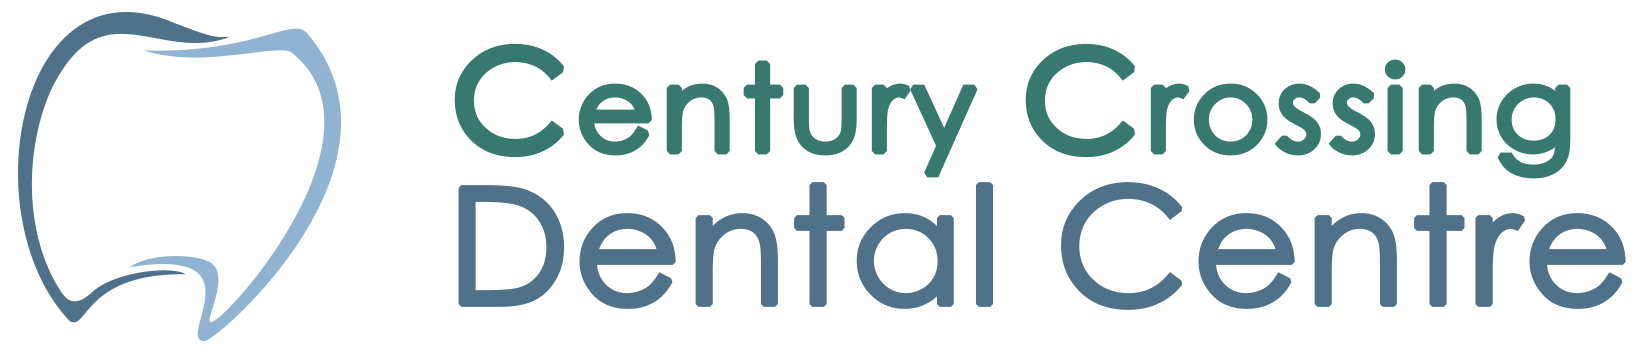 Century Crossing Dental Centre